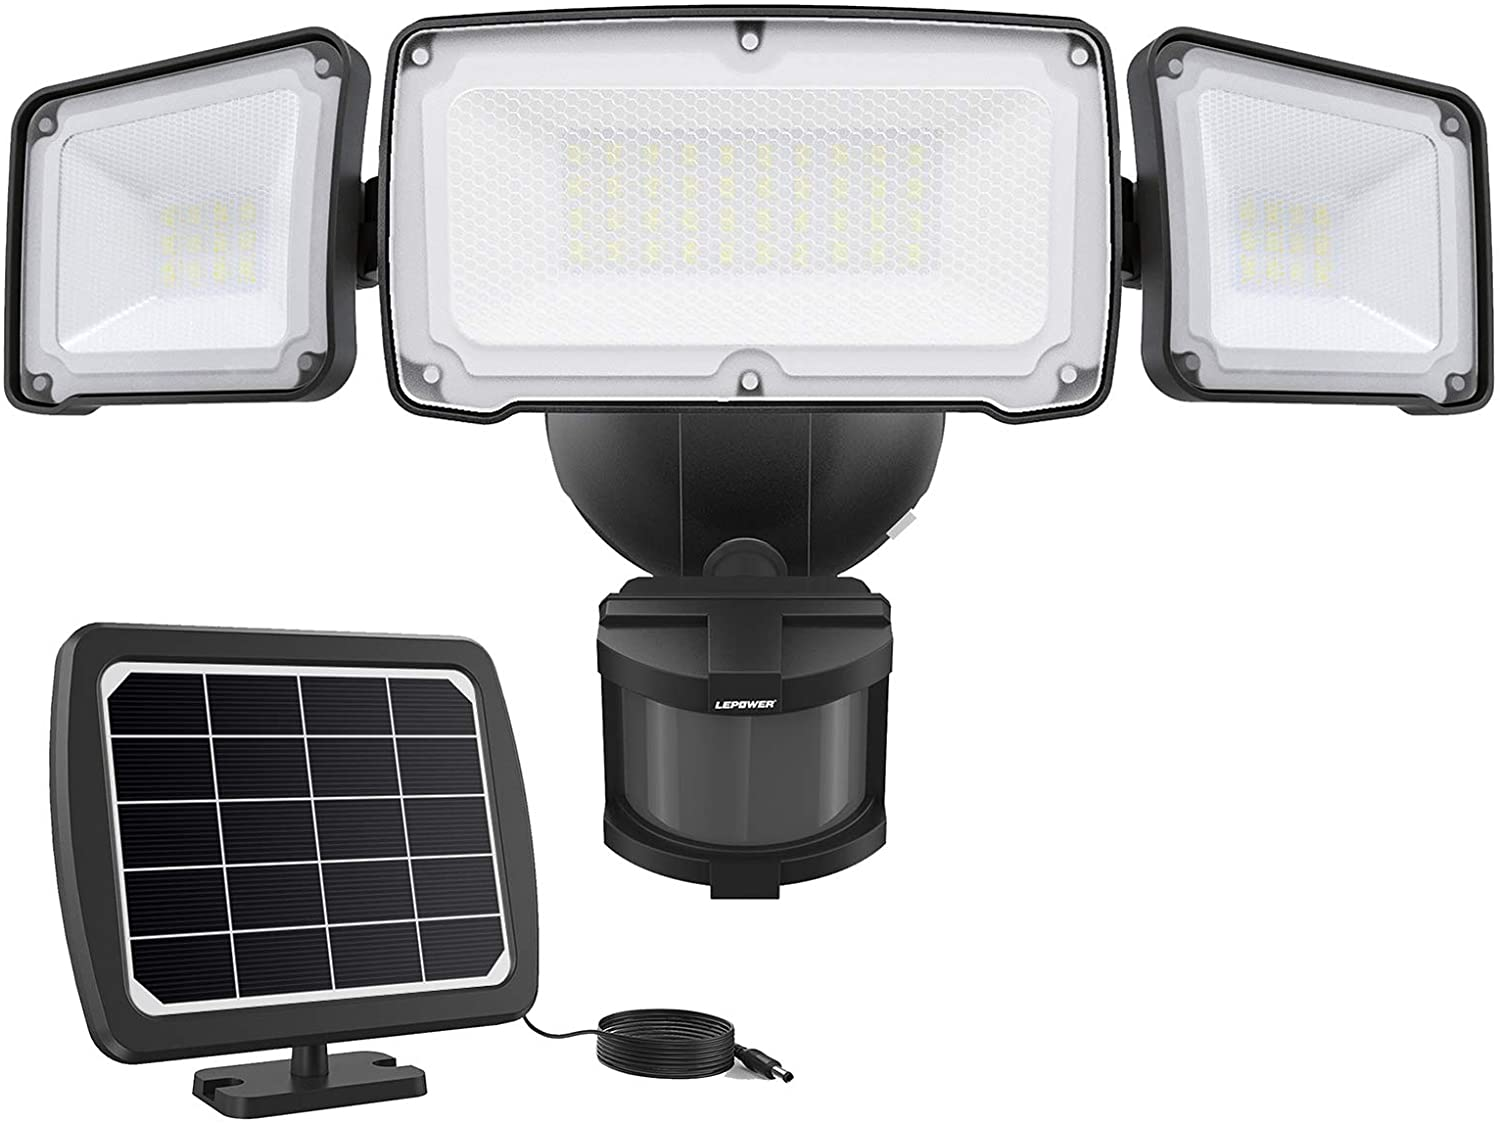 LEPOWER 1600LM LED Solar Security Lights Motion Outdoor